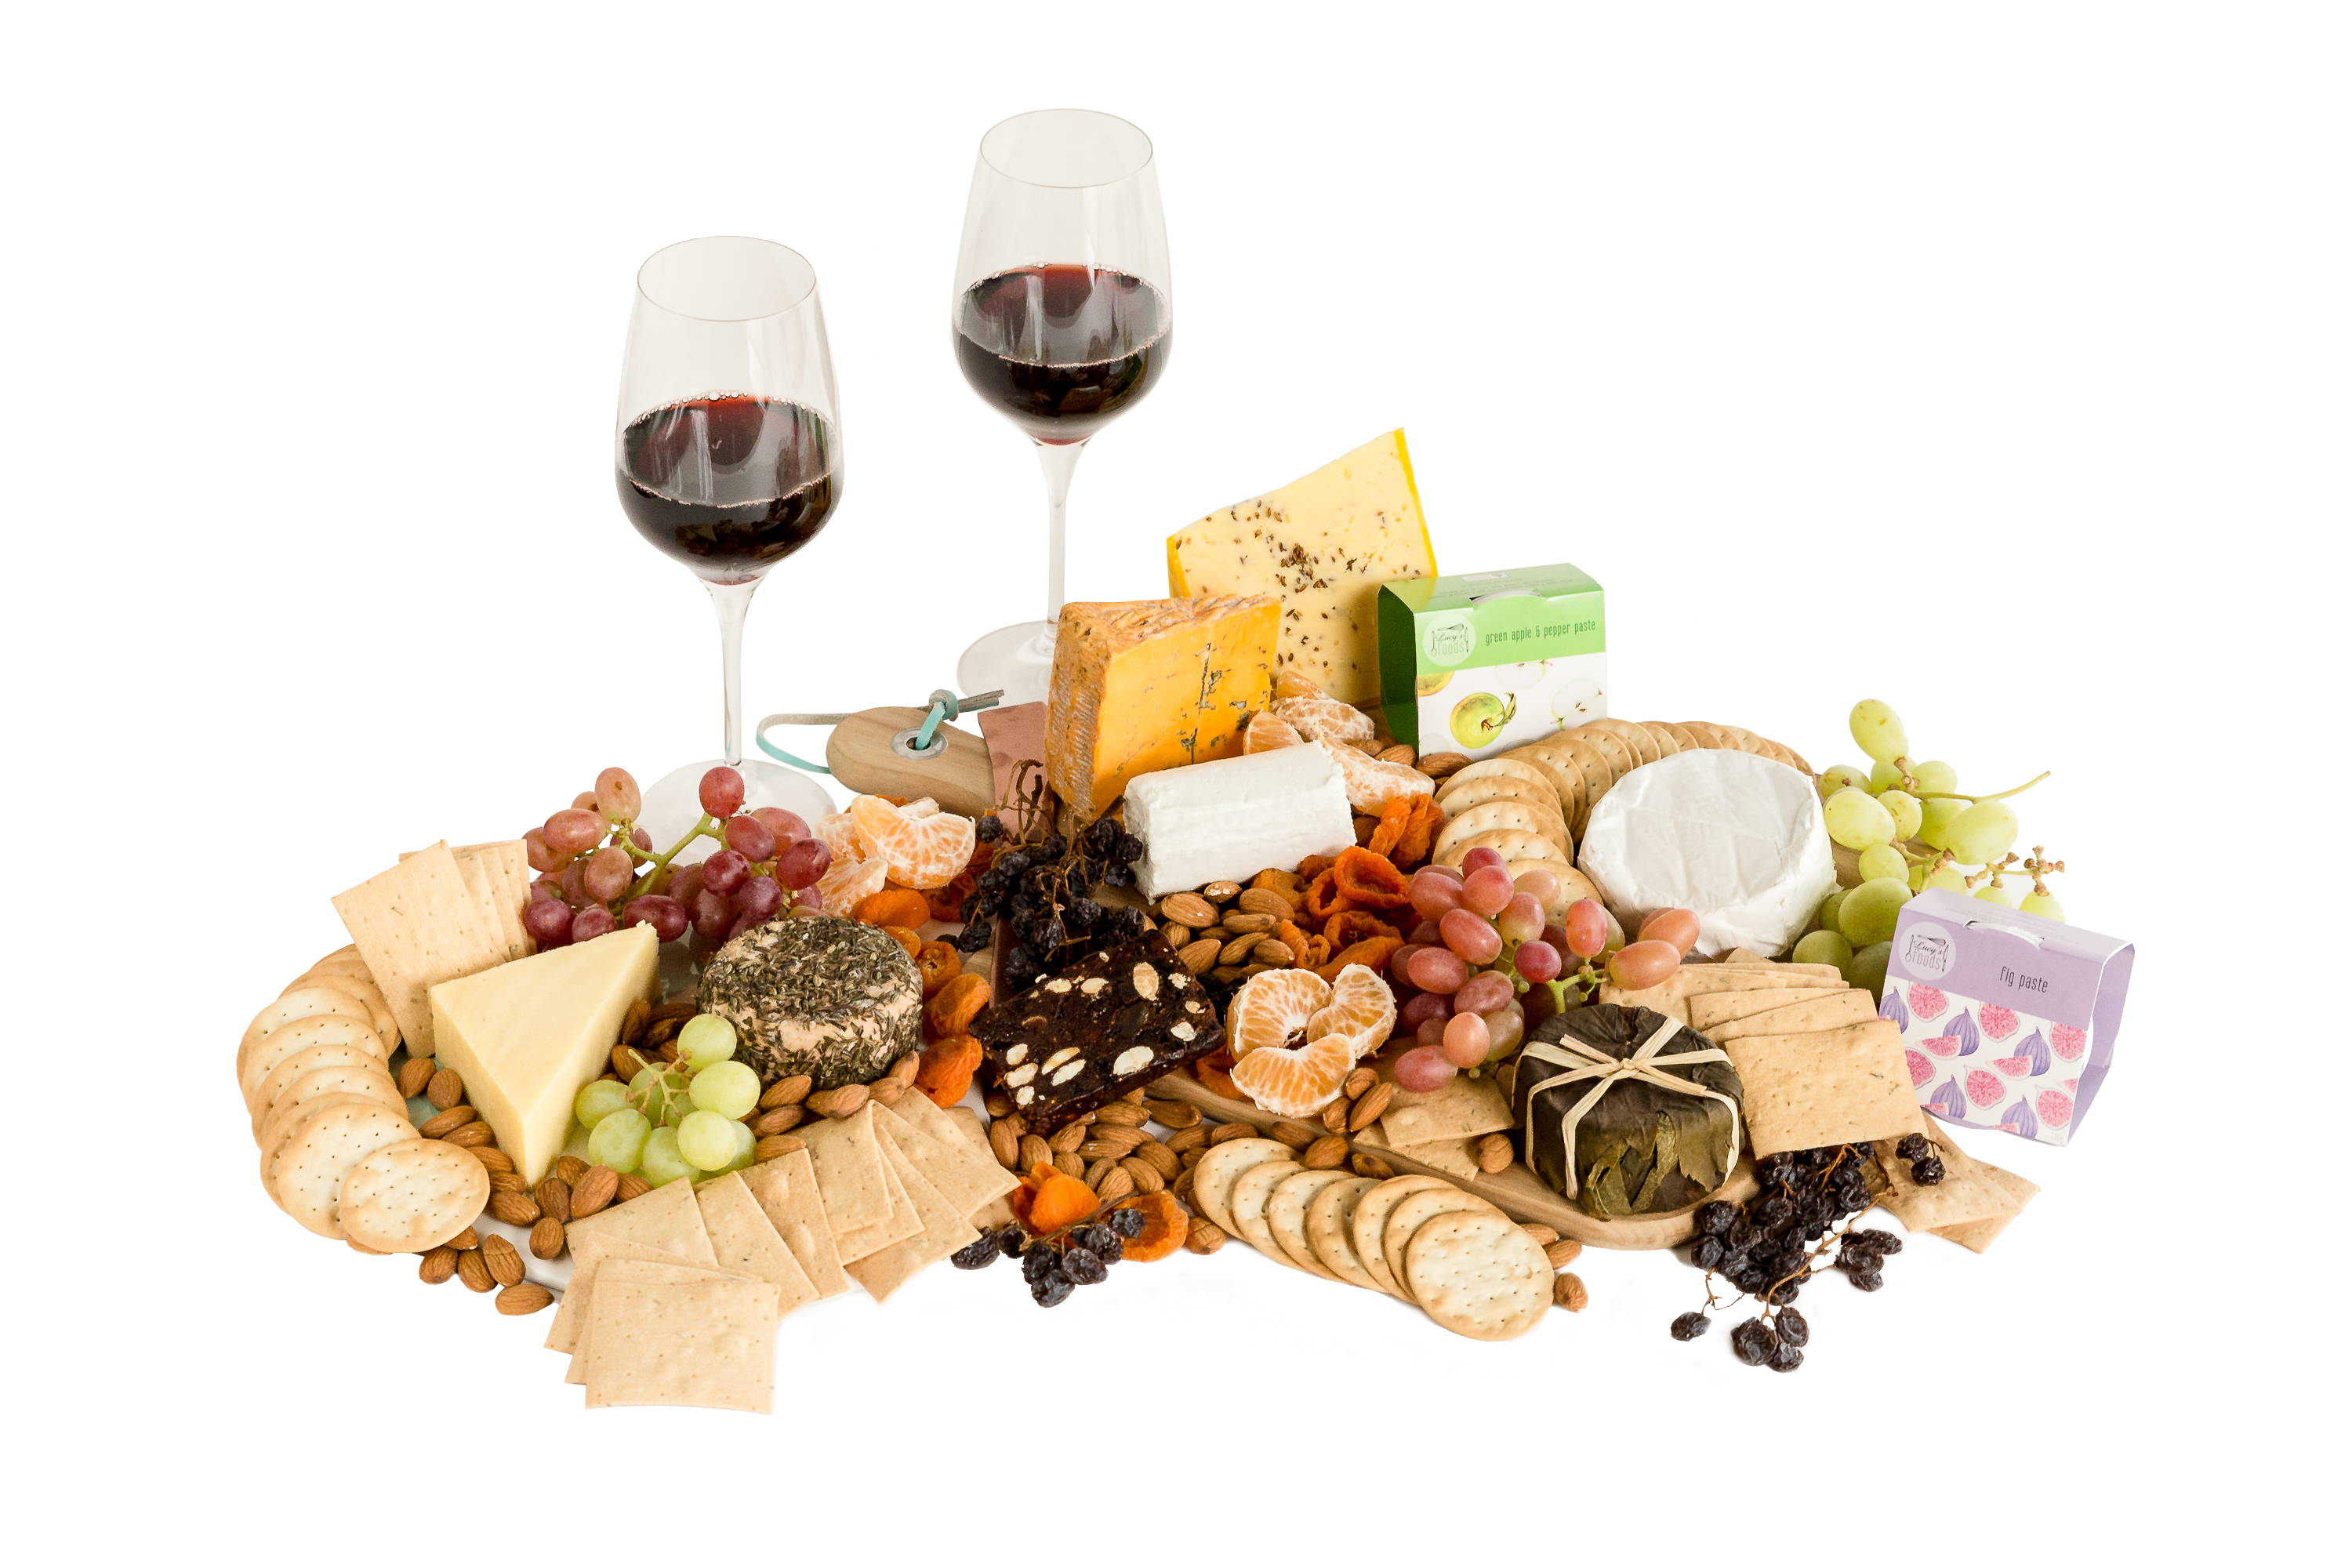 Large Australian wine and cheese platter